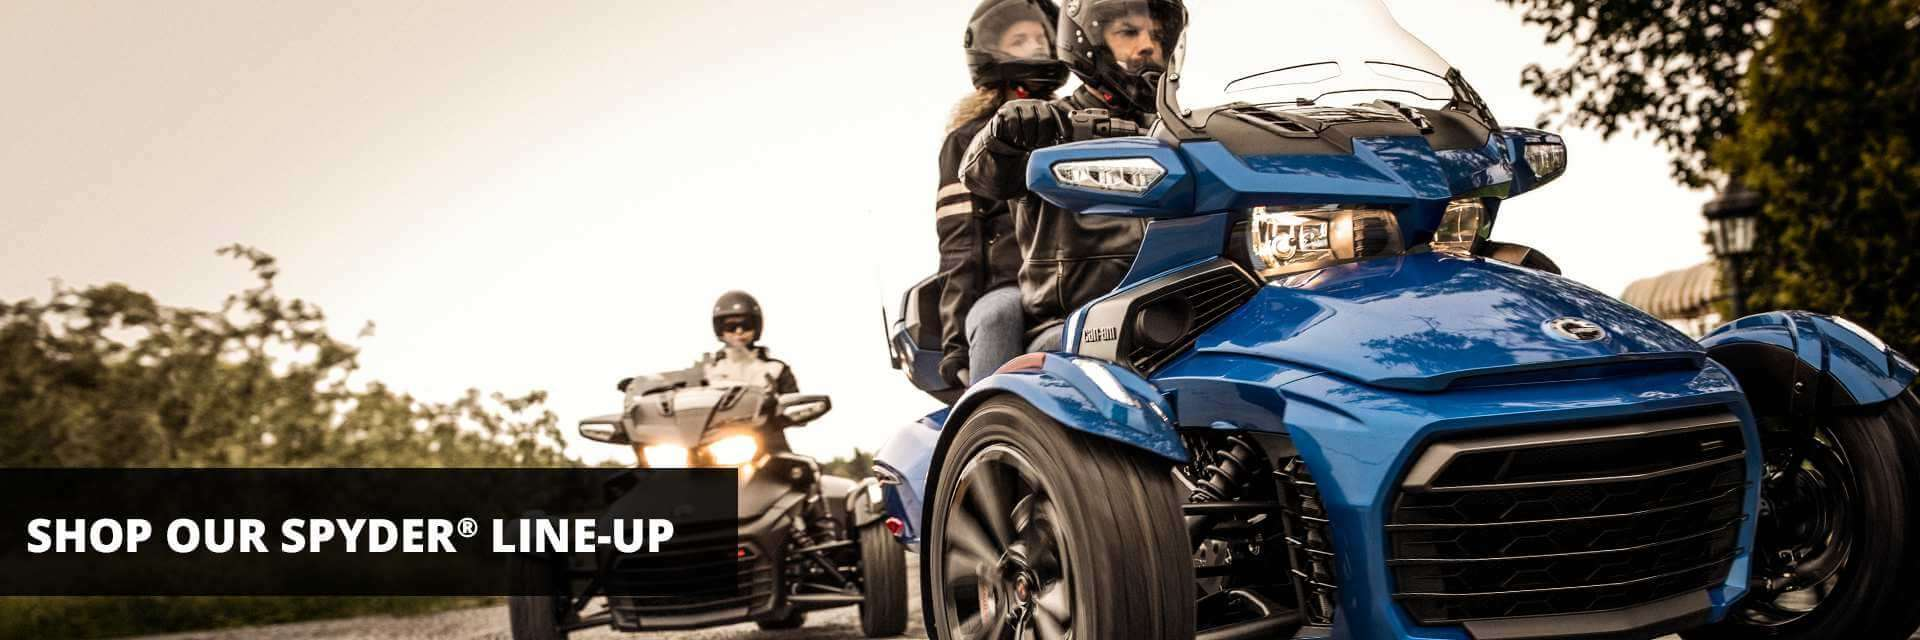 Broadway Powersports | Shop Spyder Line-Up